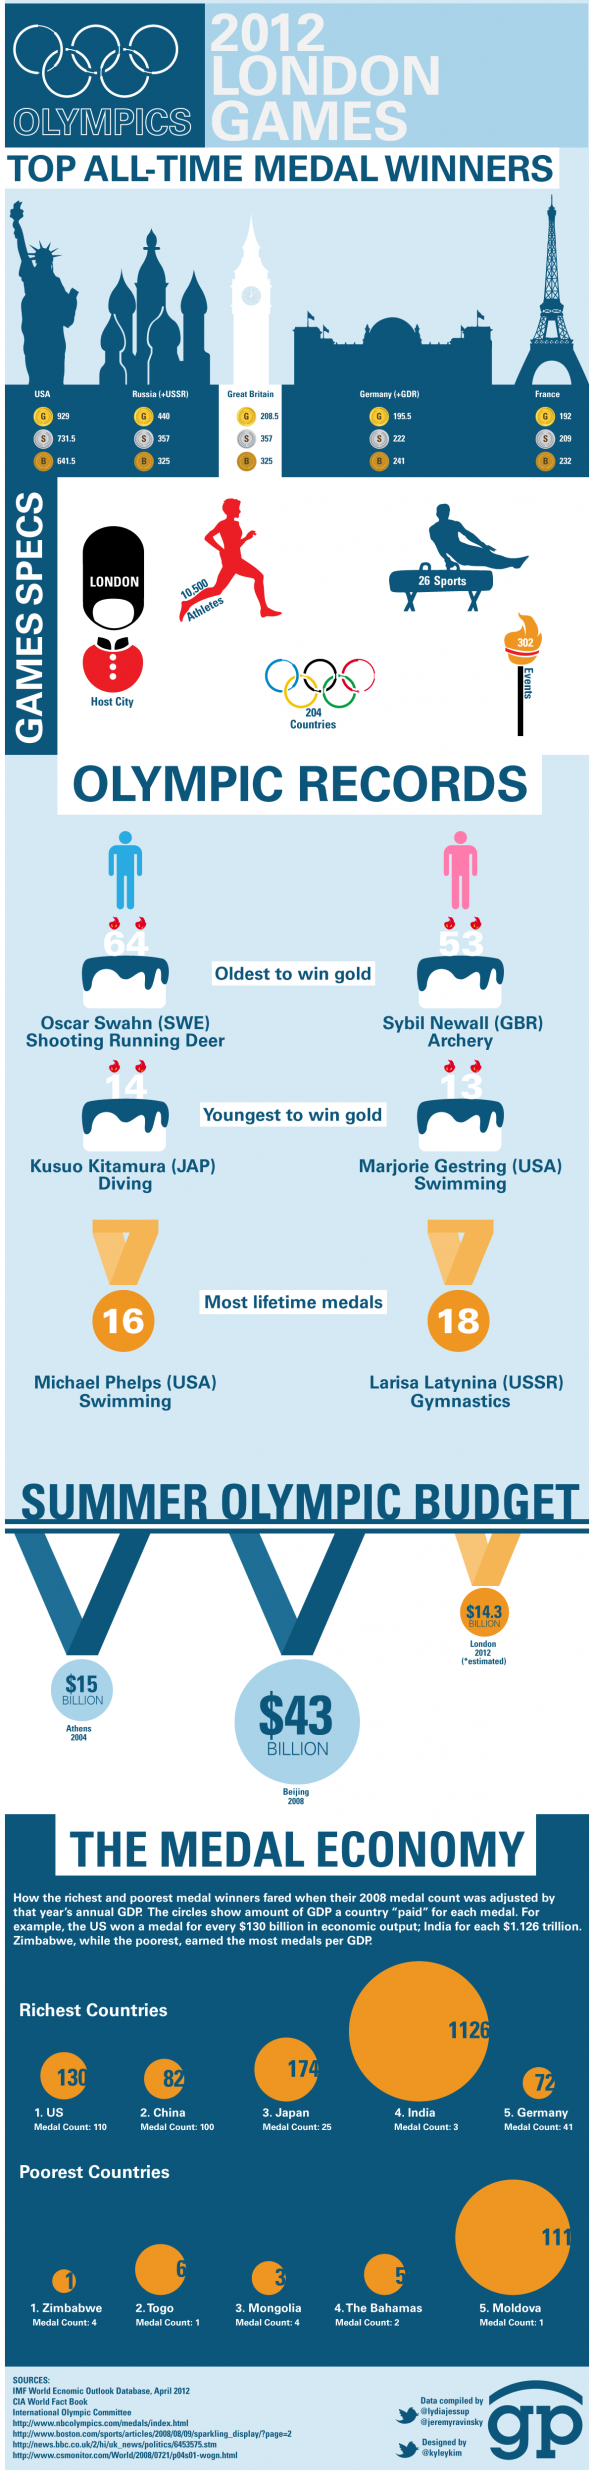 All-Time Olympic Medal Winners